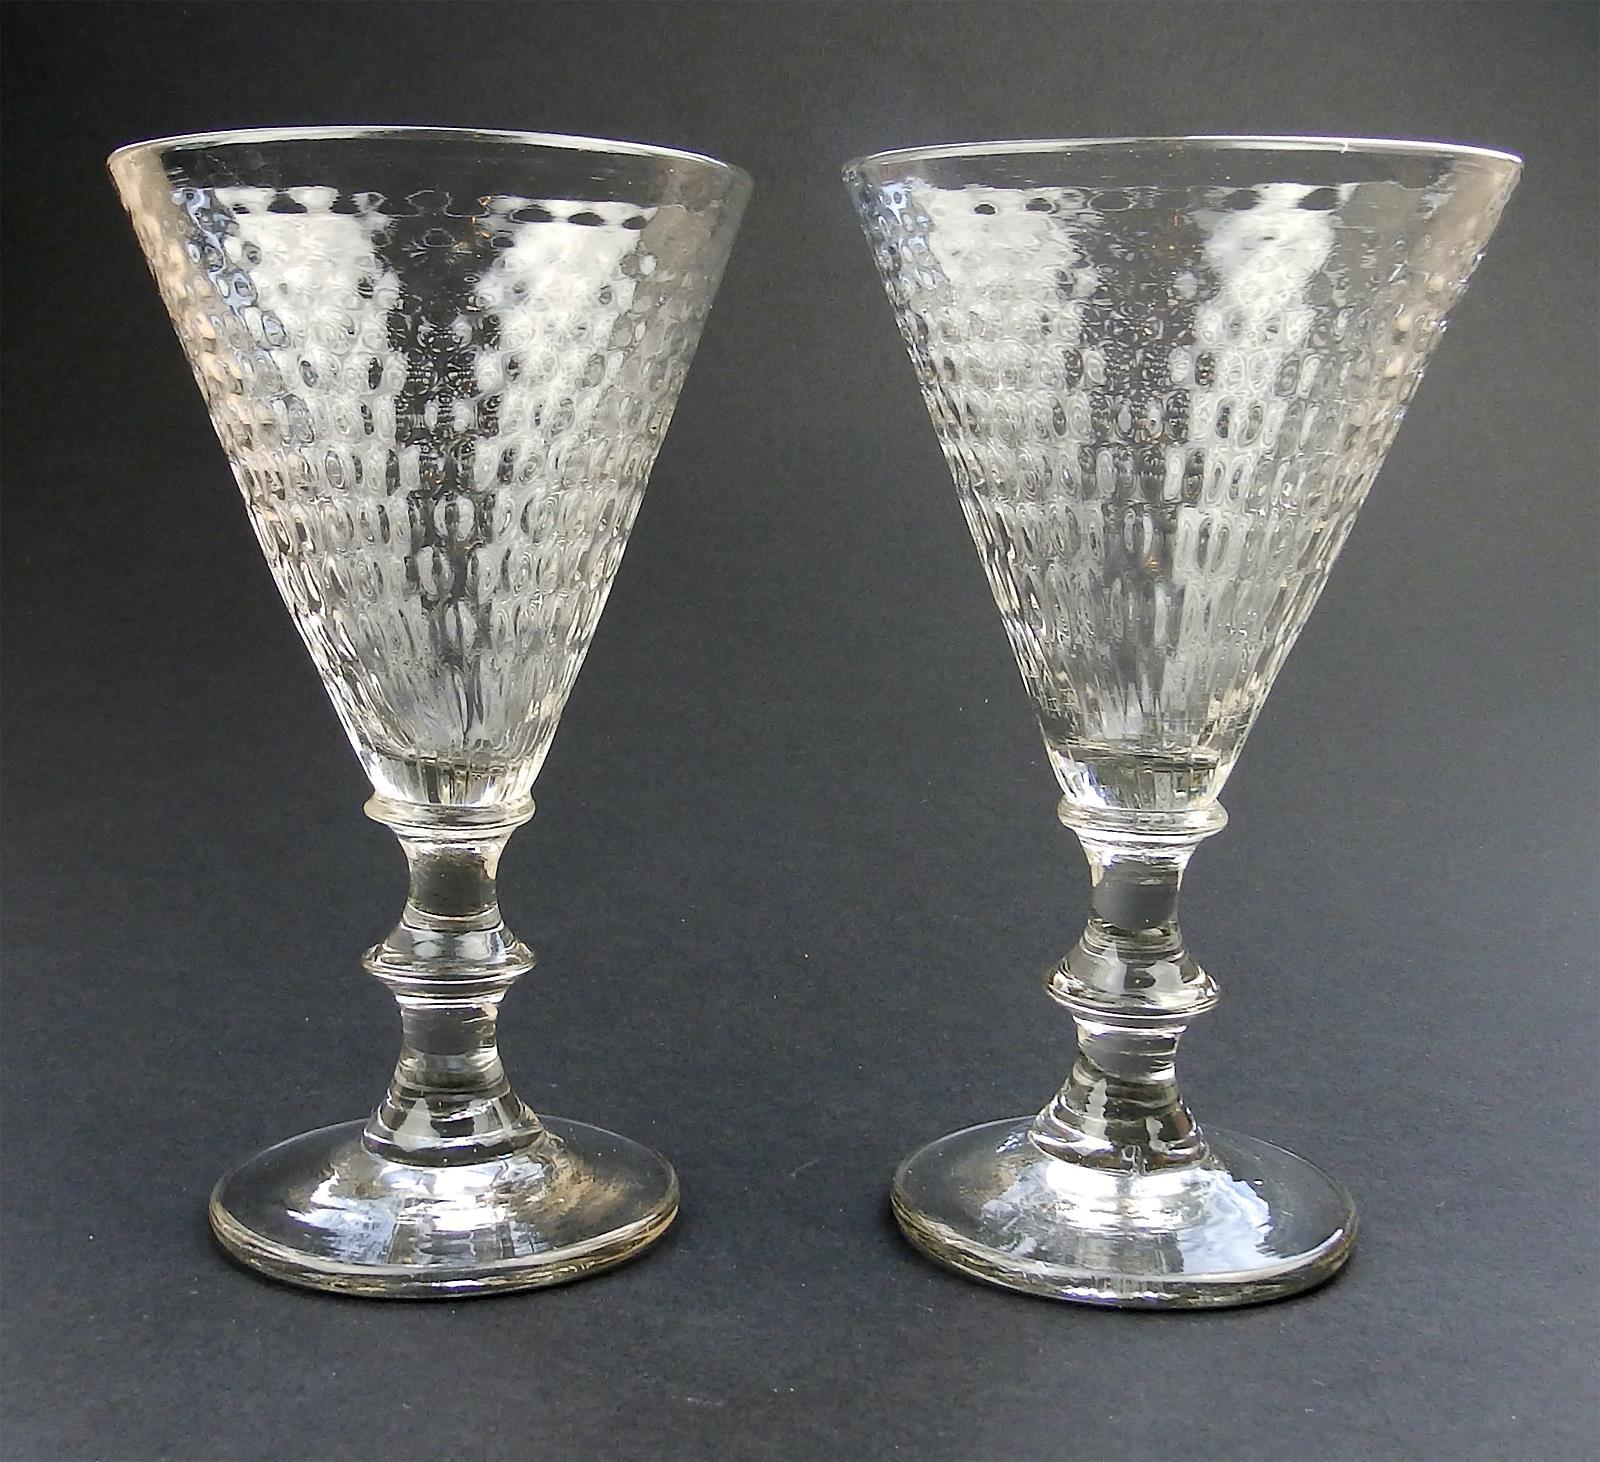 Big Red Wine Glasses Antique Glass A Rare Pair Large Wine Glasses Honeycomb